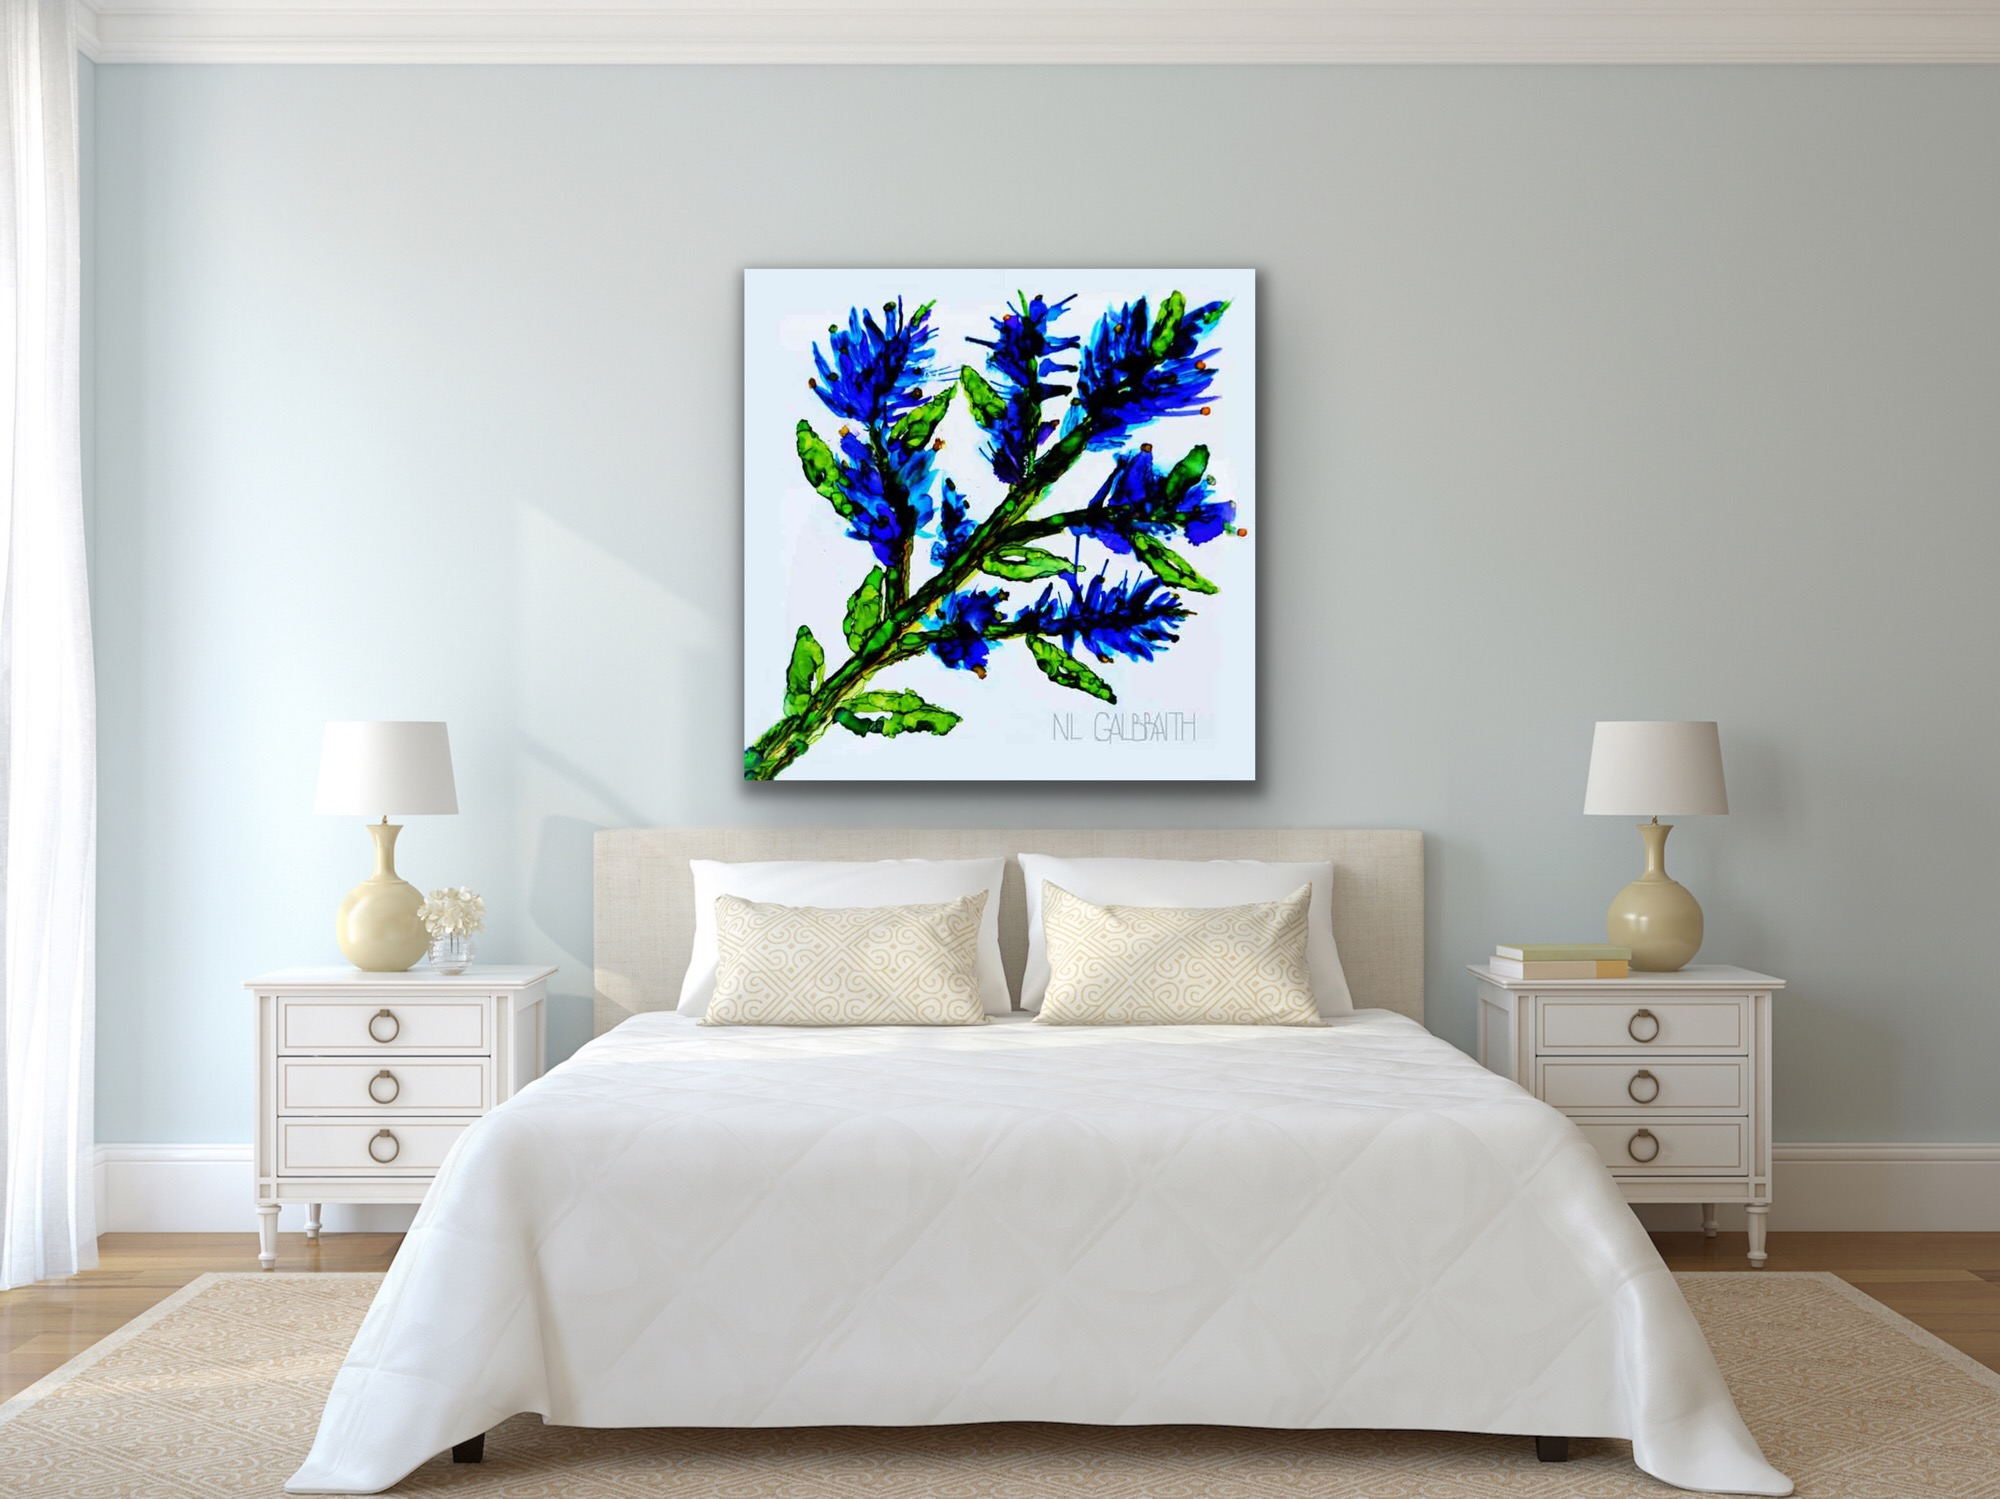 Large Blue Sprig Flower Graphic in a White Bedroom